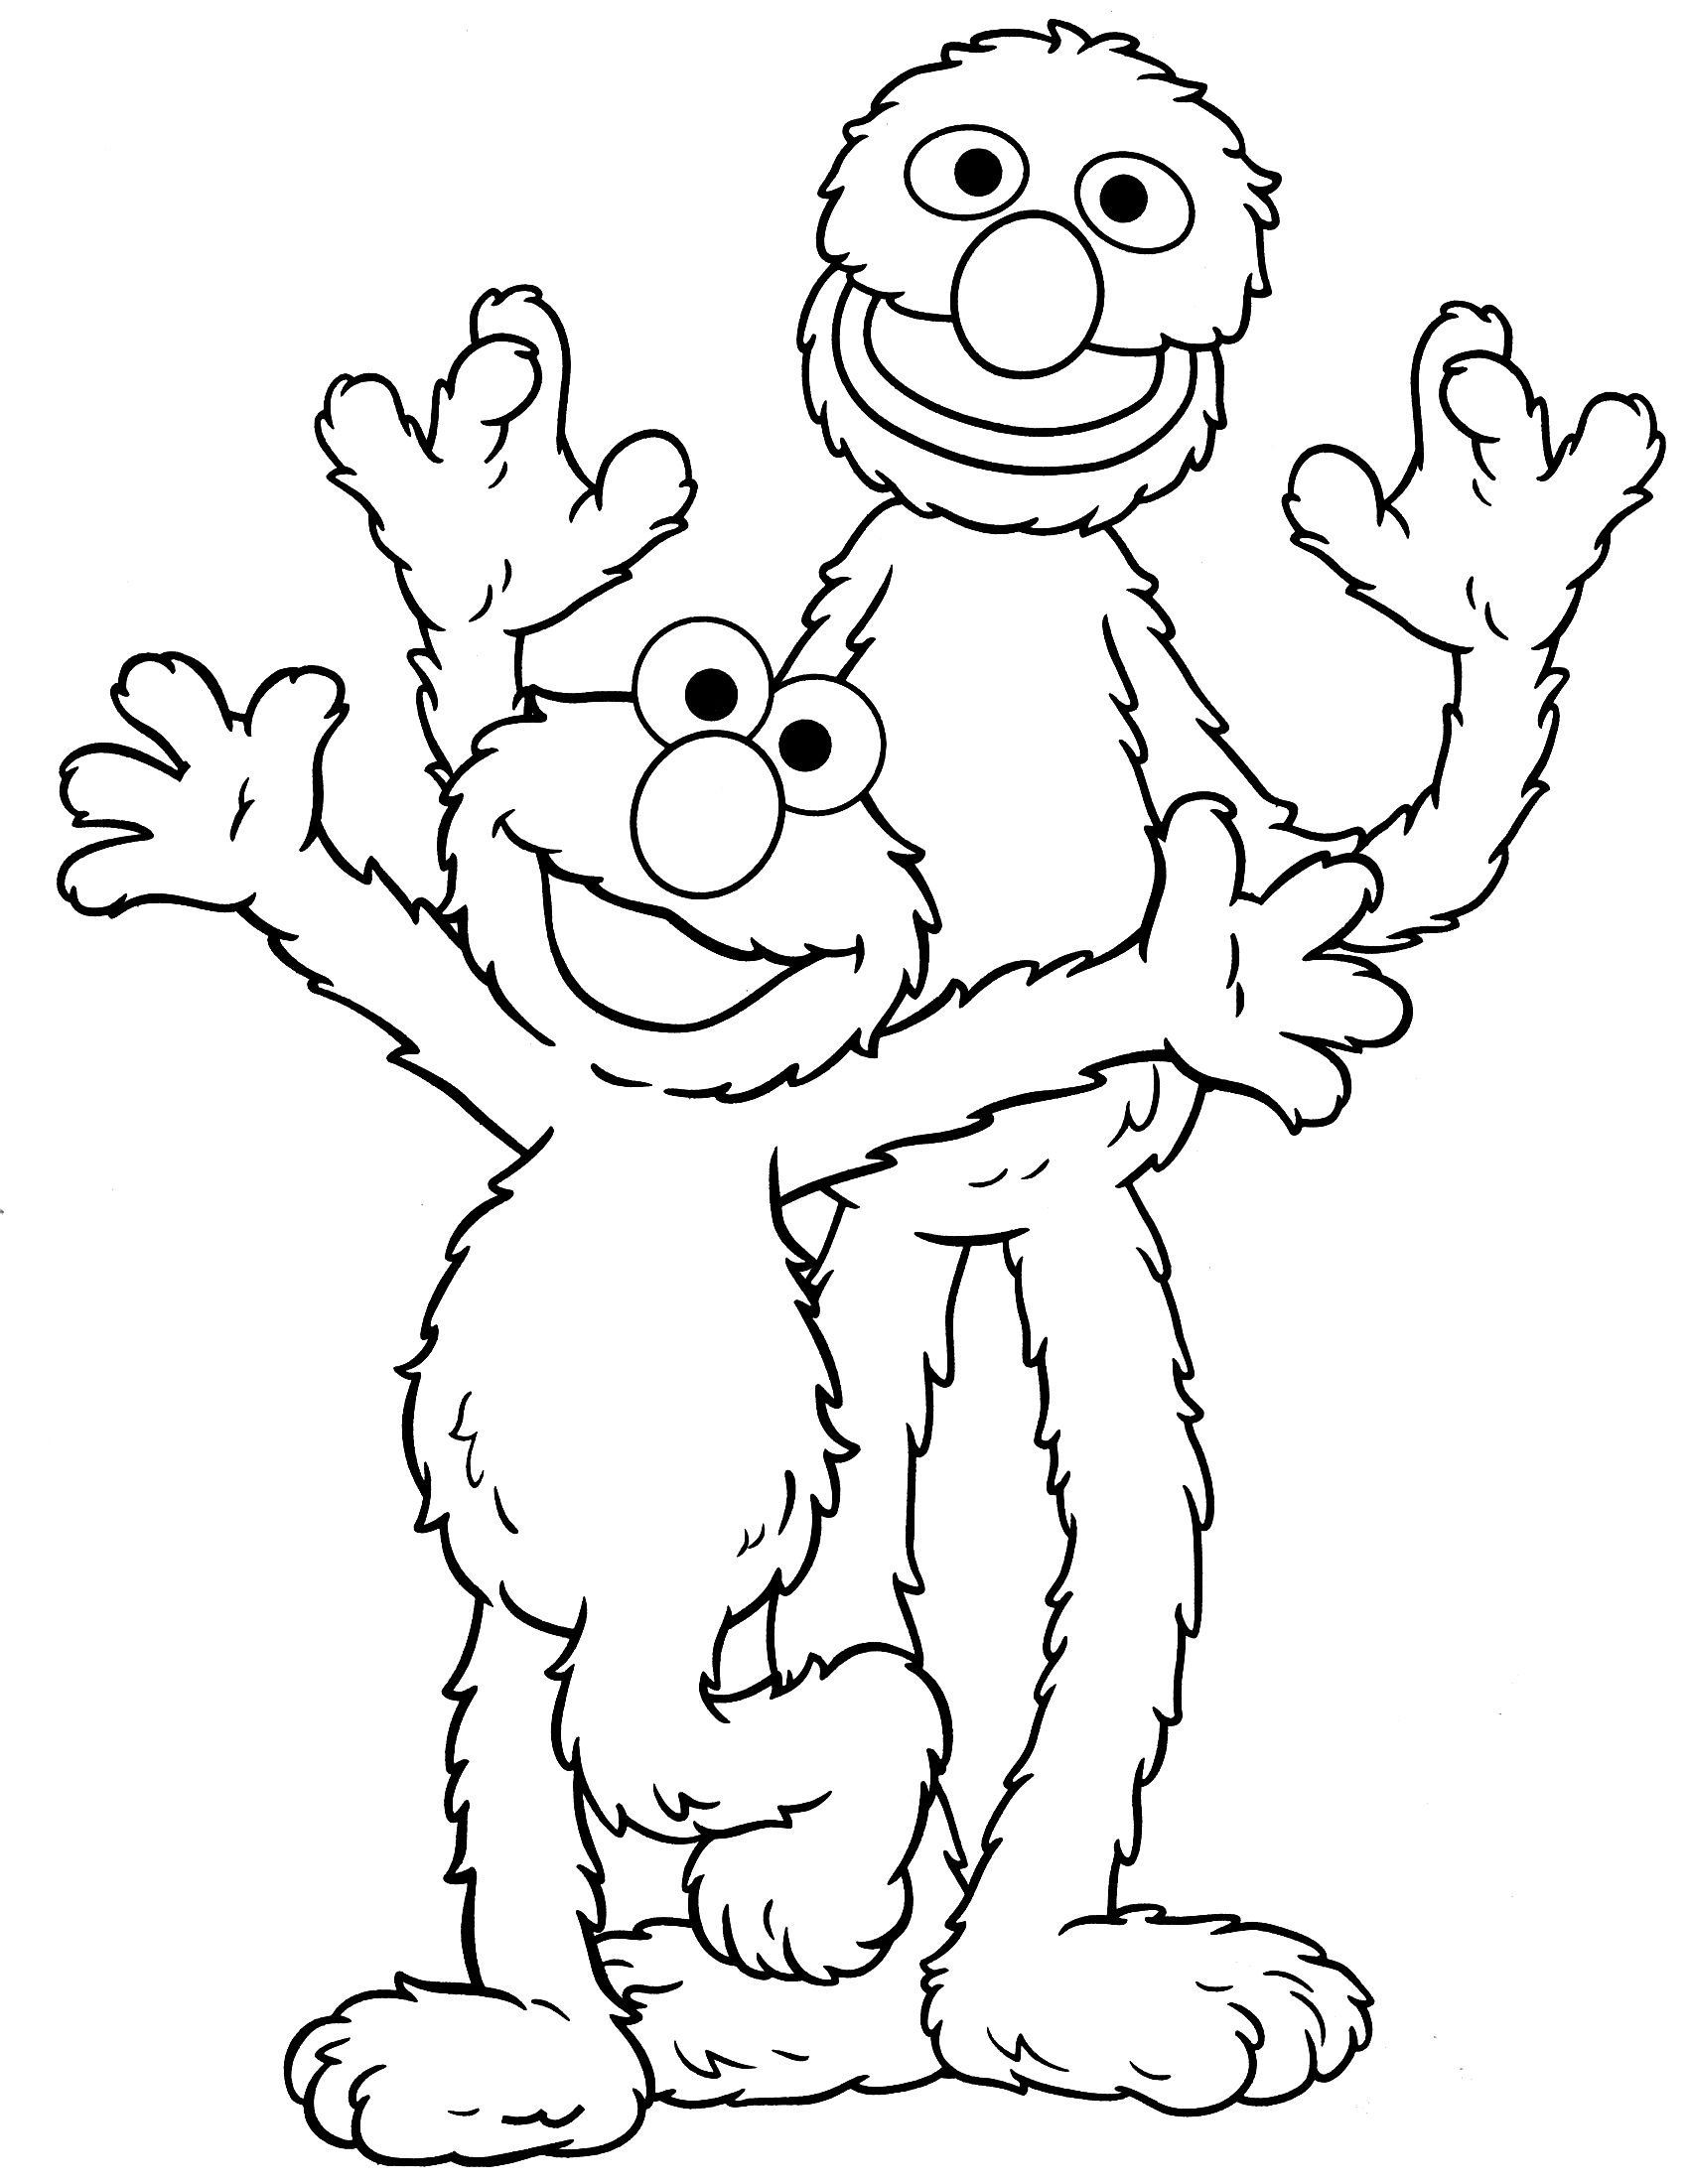 Sesame Street Coloring Pages Bert Free Printable Coloring